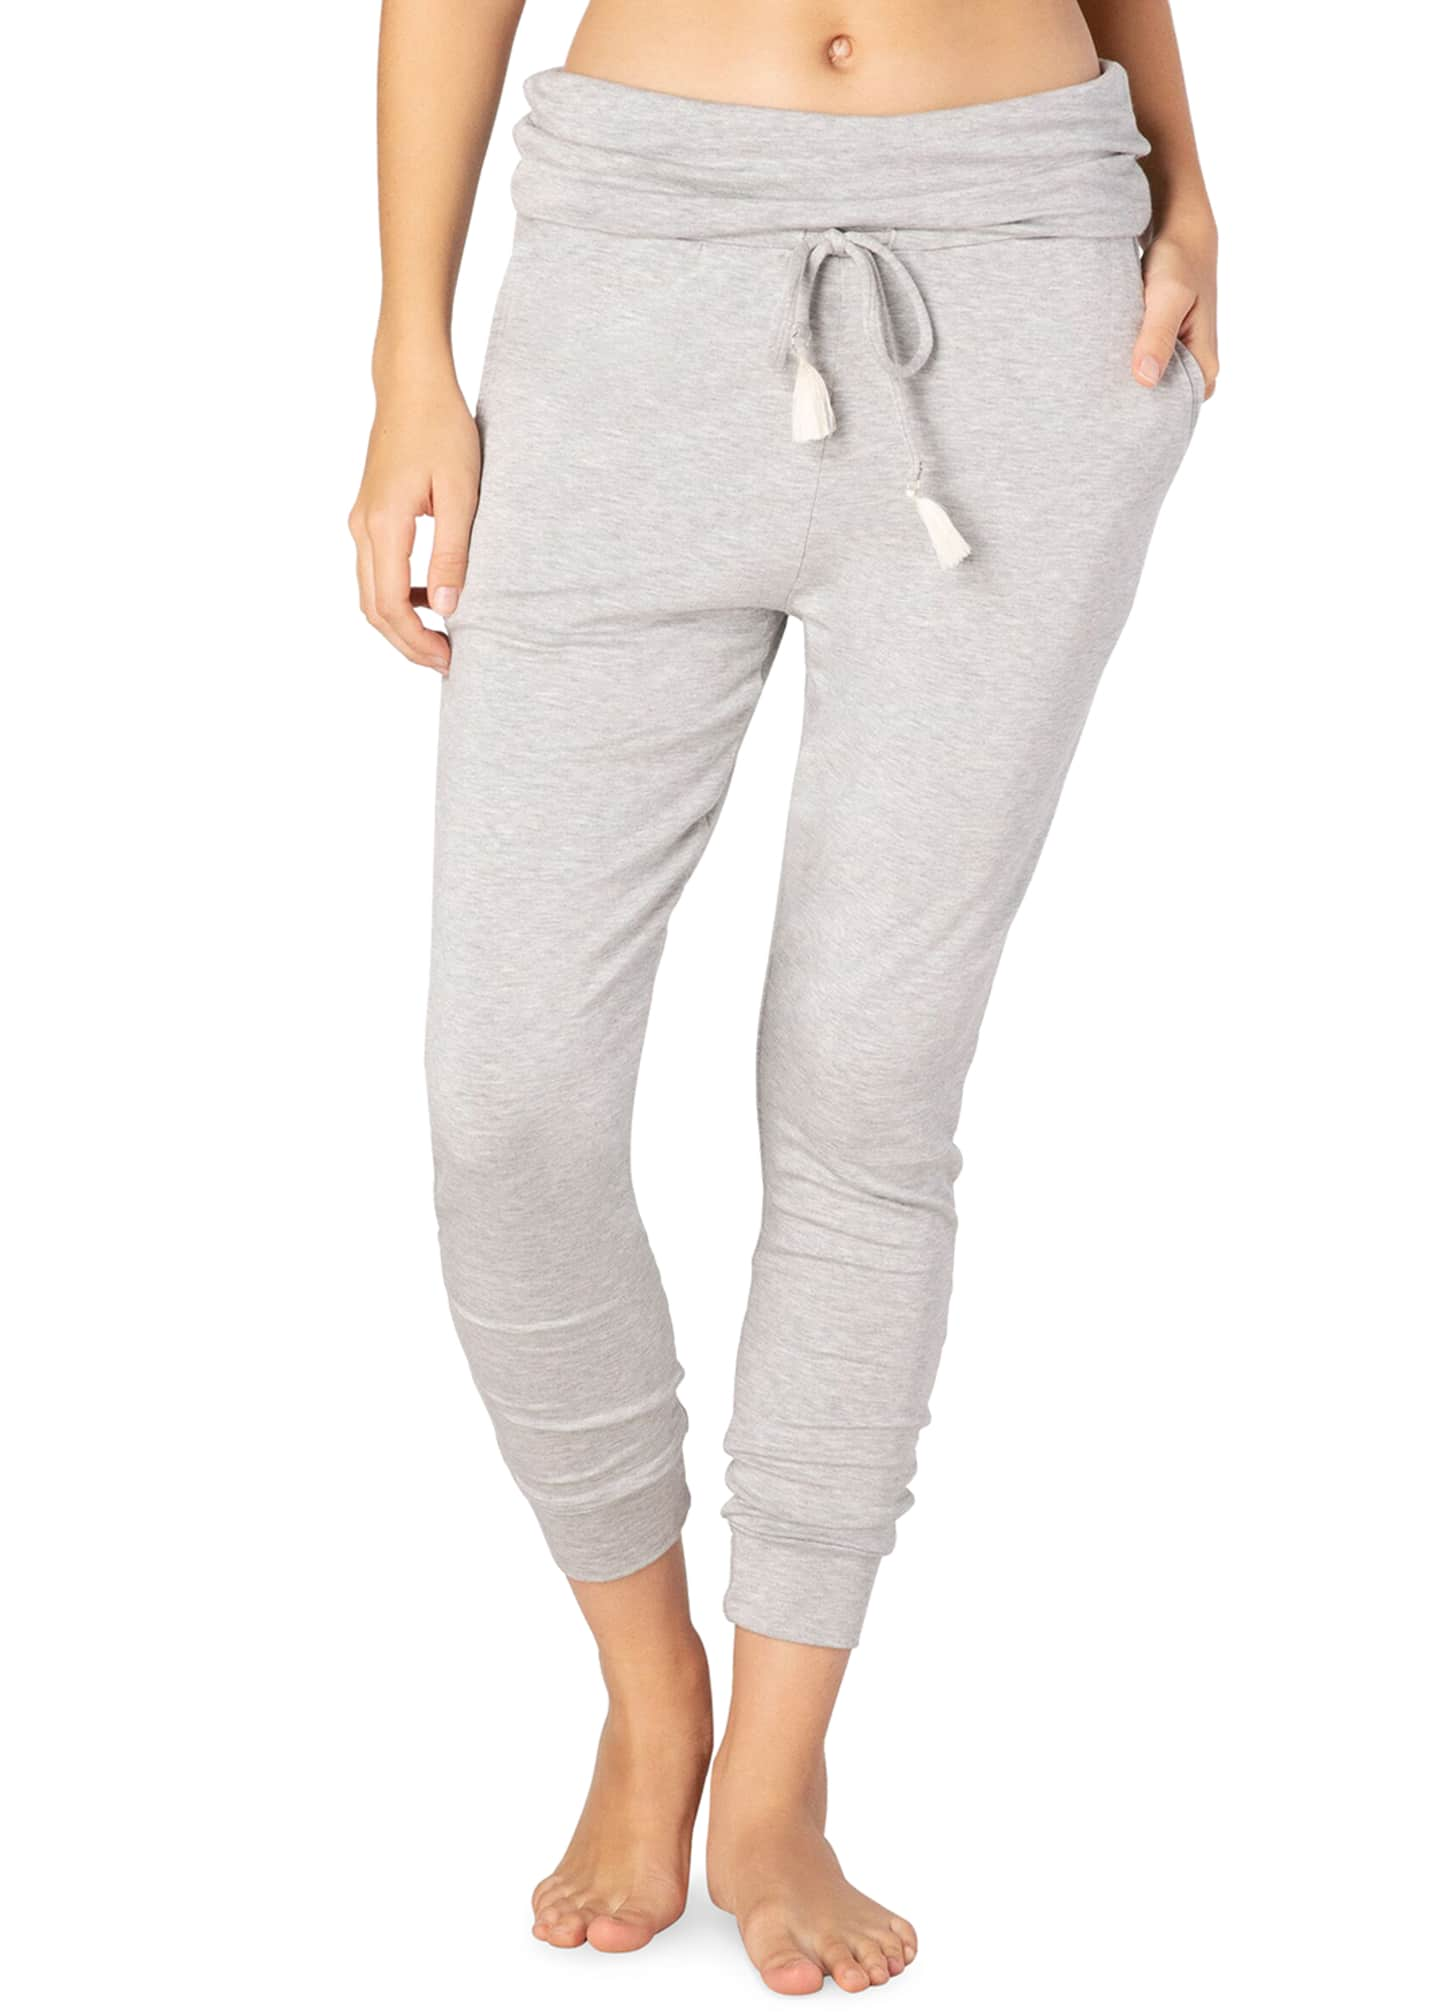 Beyond Yoga Good Sport Midi Swegging Pants